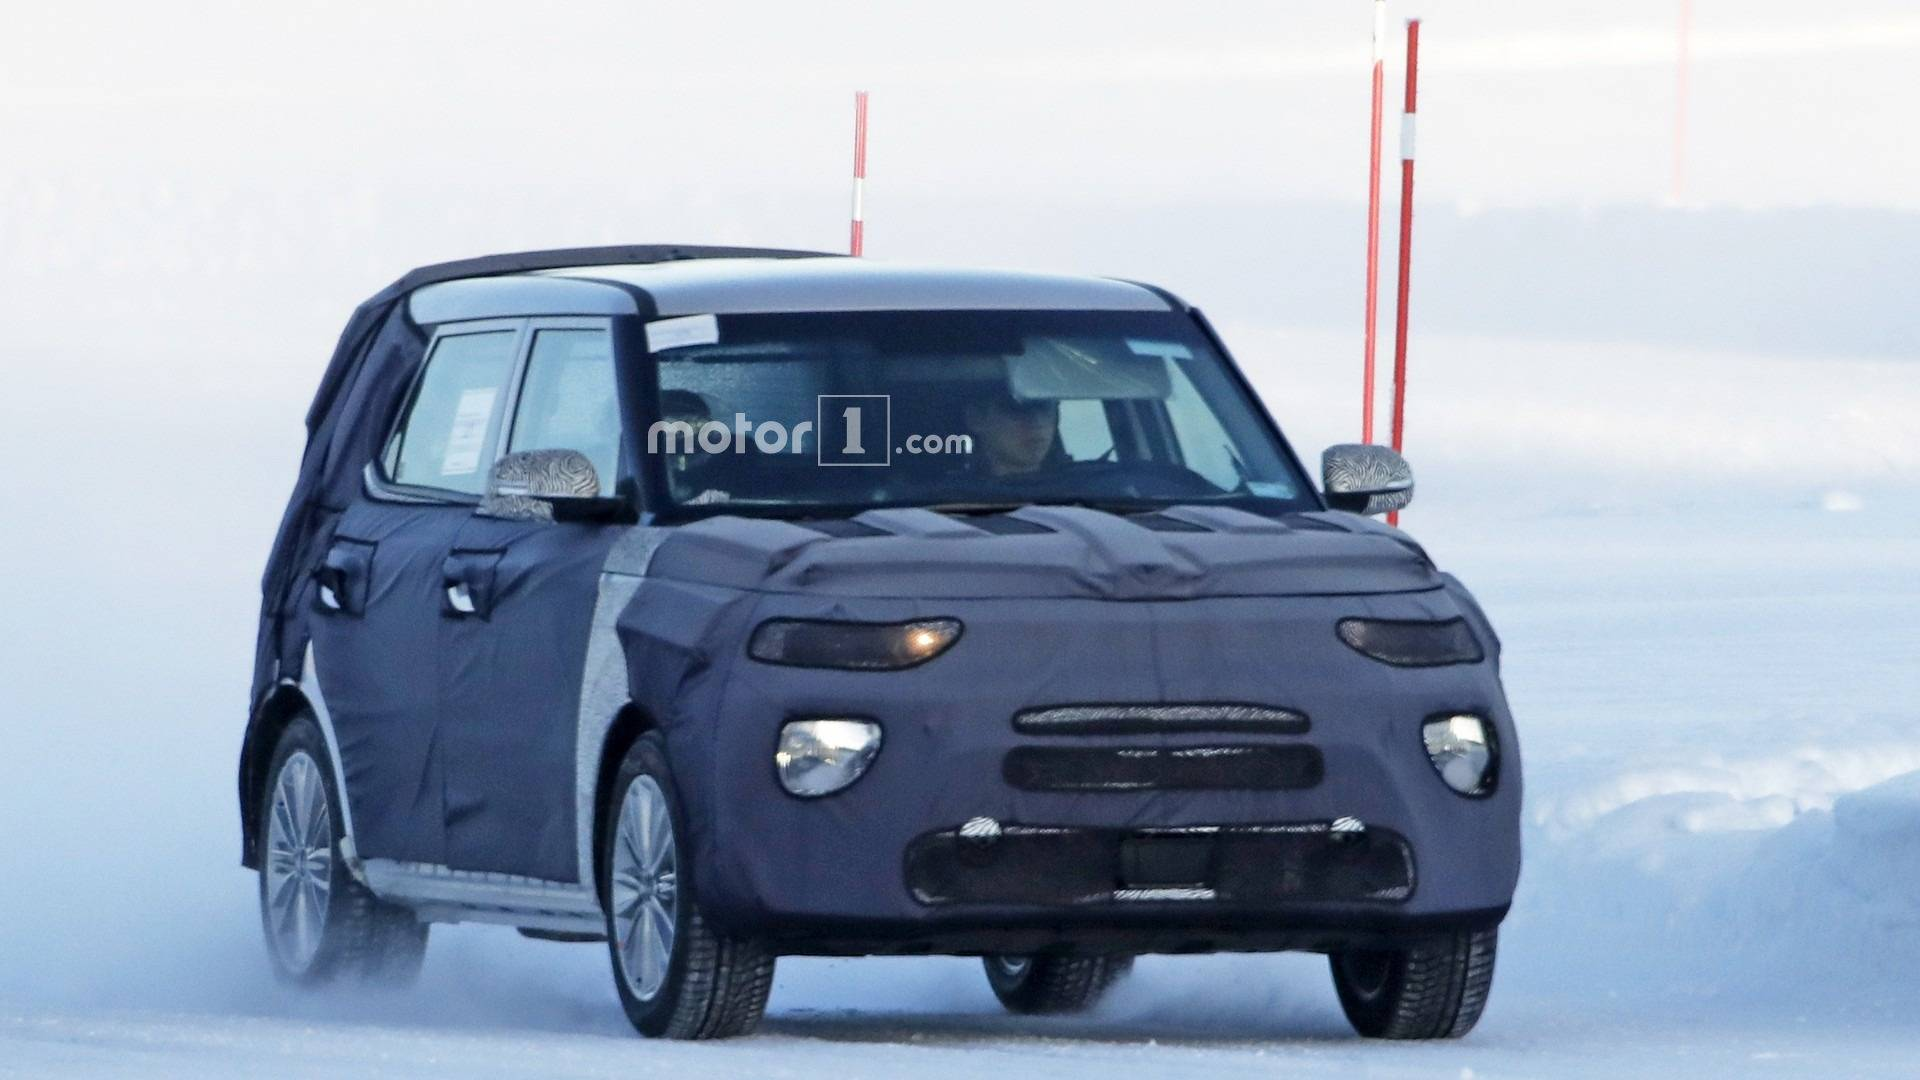 next gen kia soul spied for the first time update rh motor1 com 2000 Kia Sephia Engine Diagram 2011 Kia Soul Engine Diagram